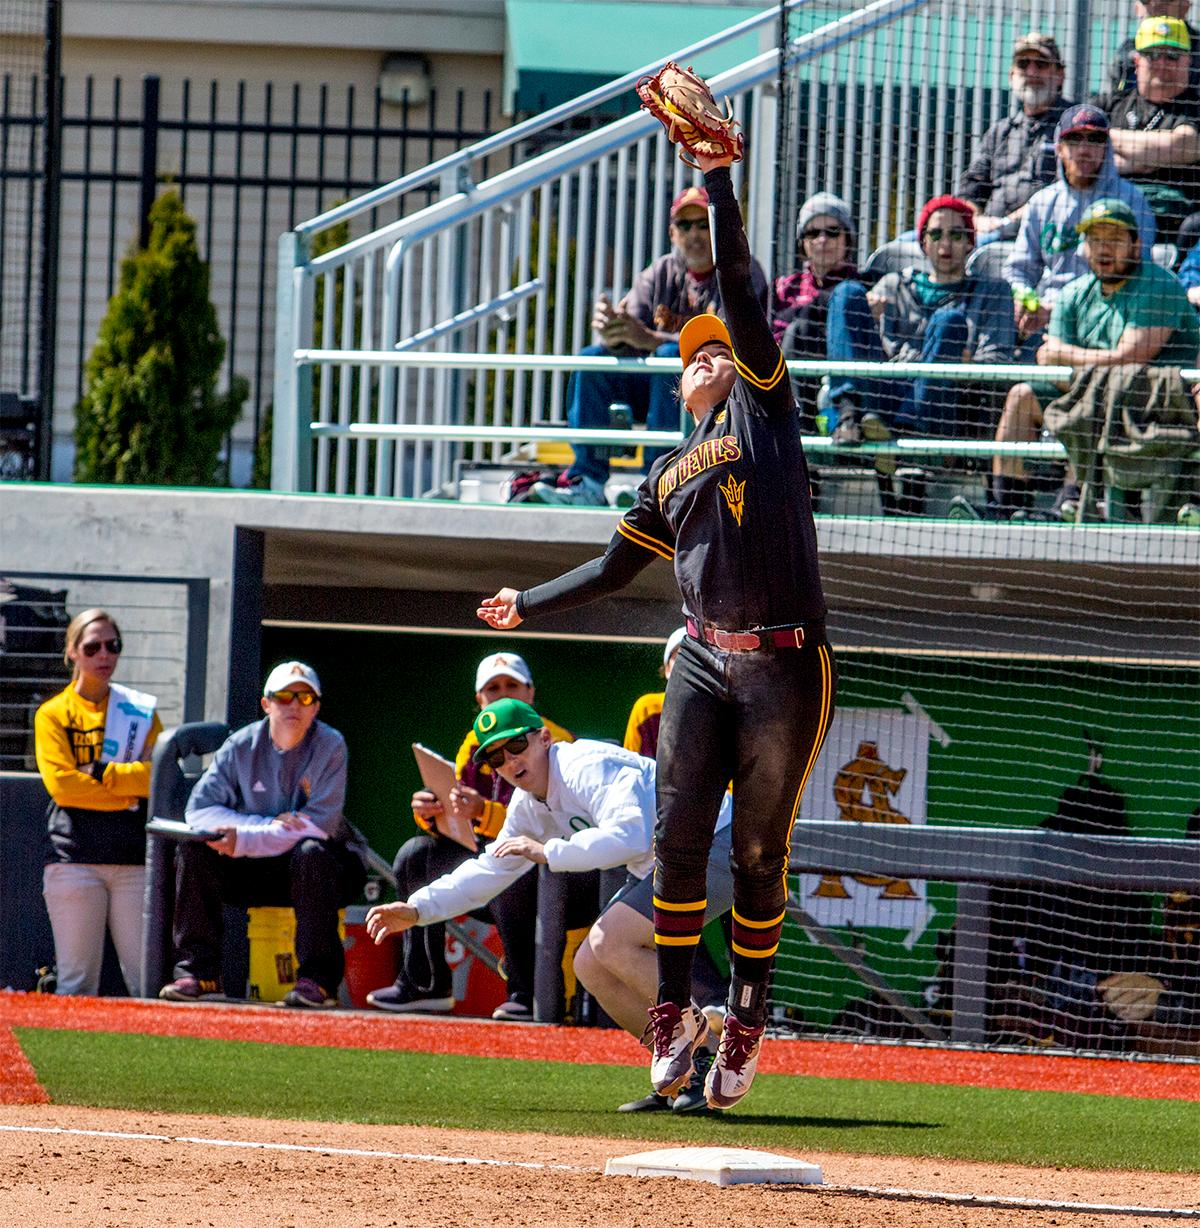 Photos: Ducks Softball Clinches Another Win Over Sun